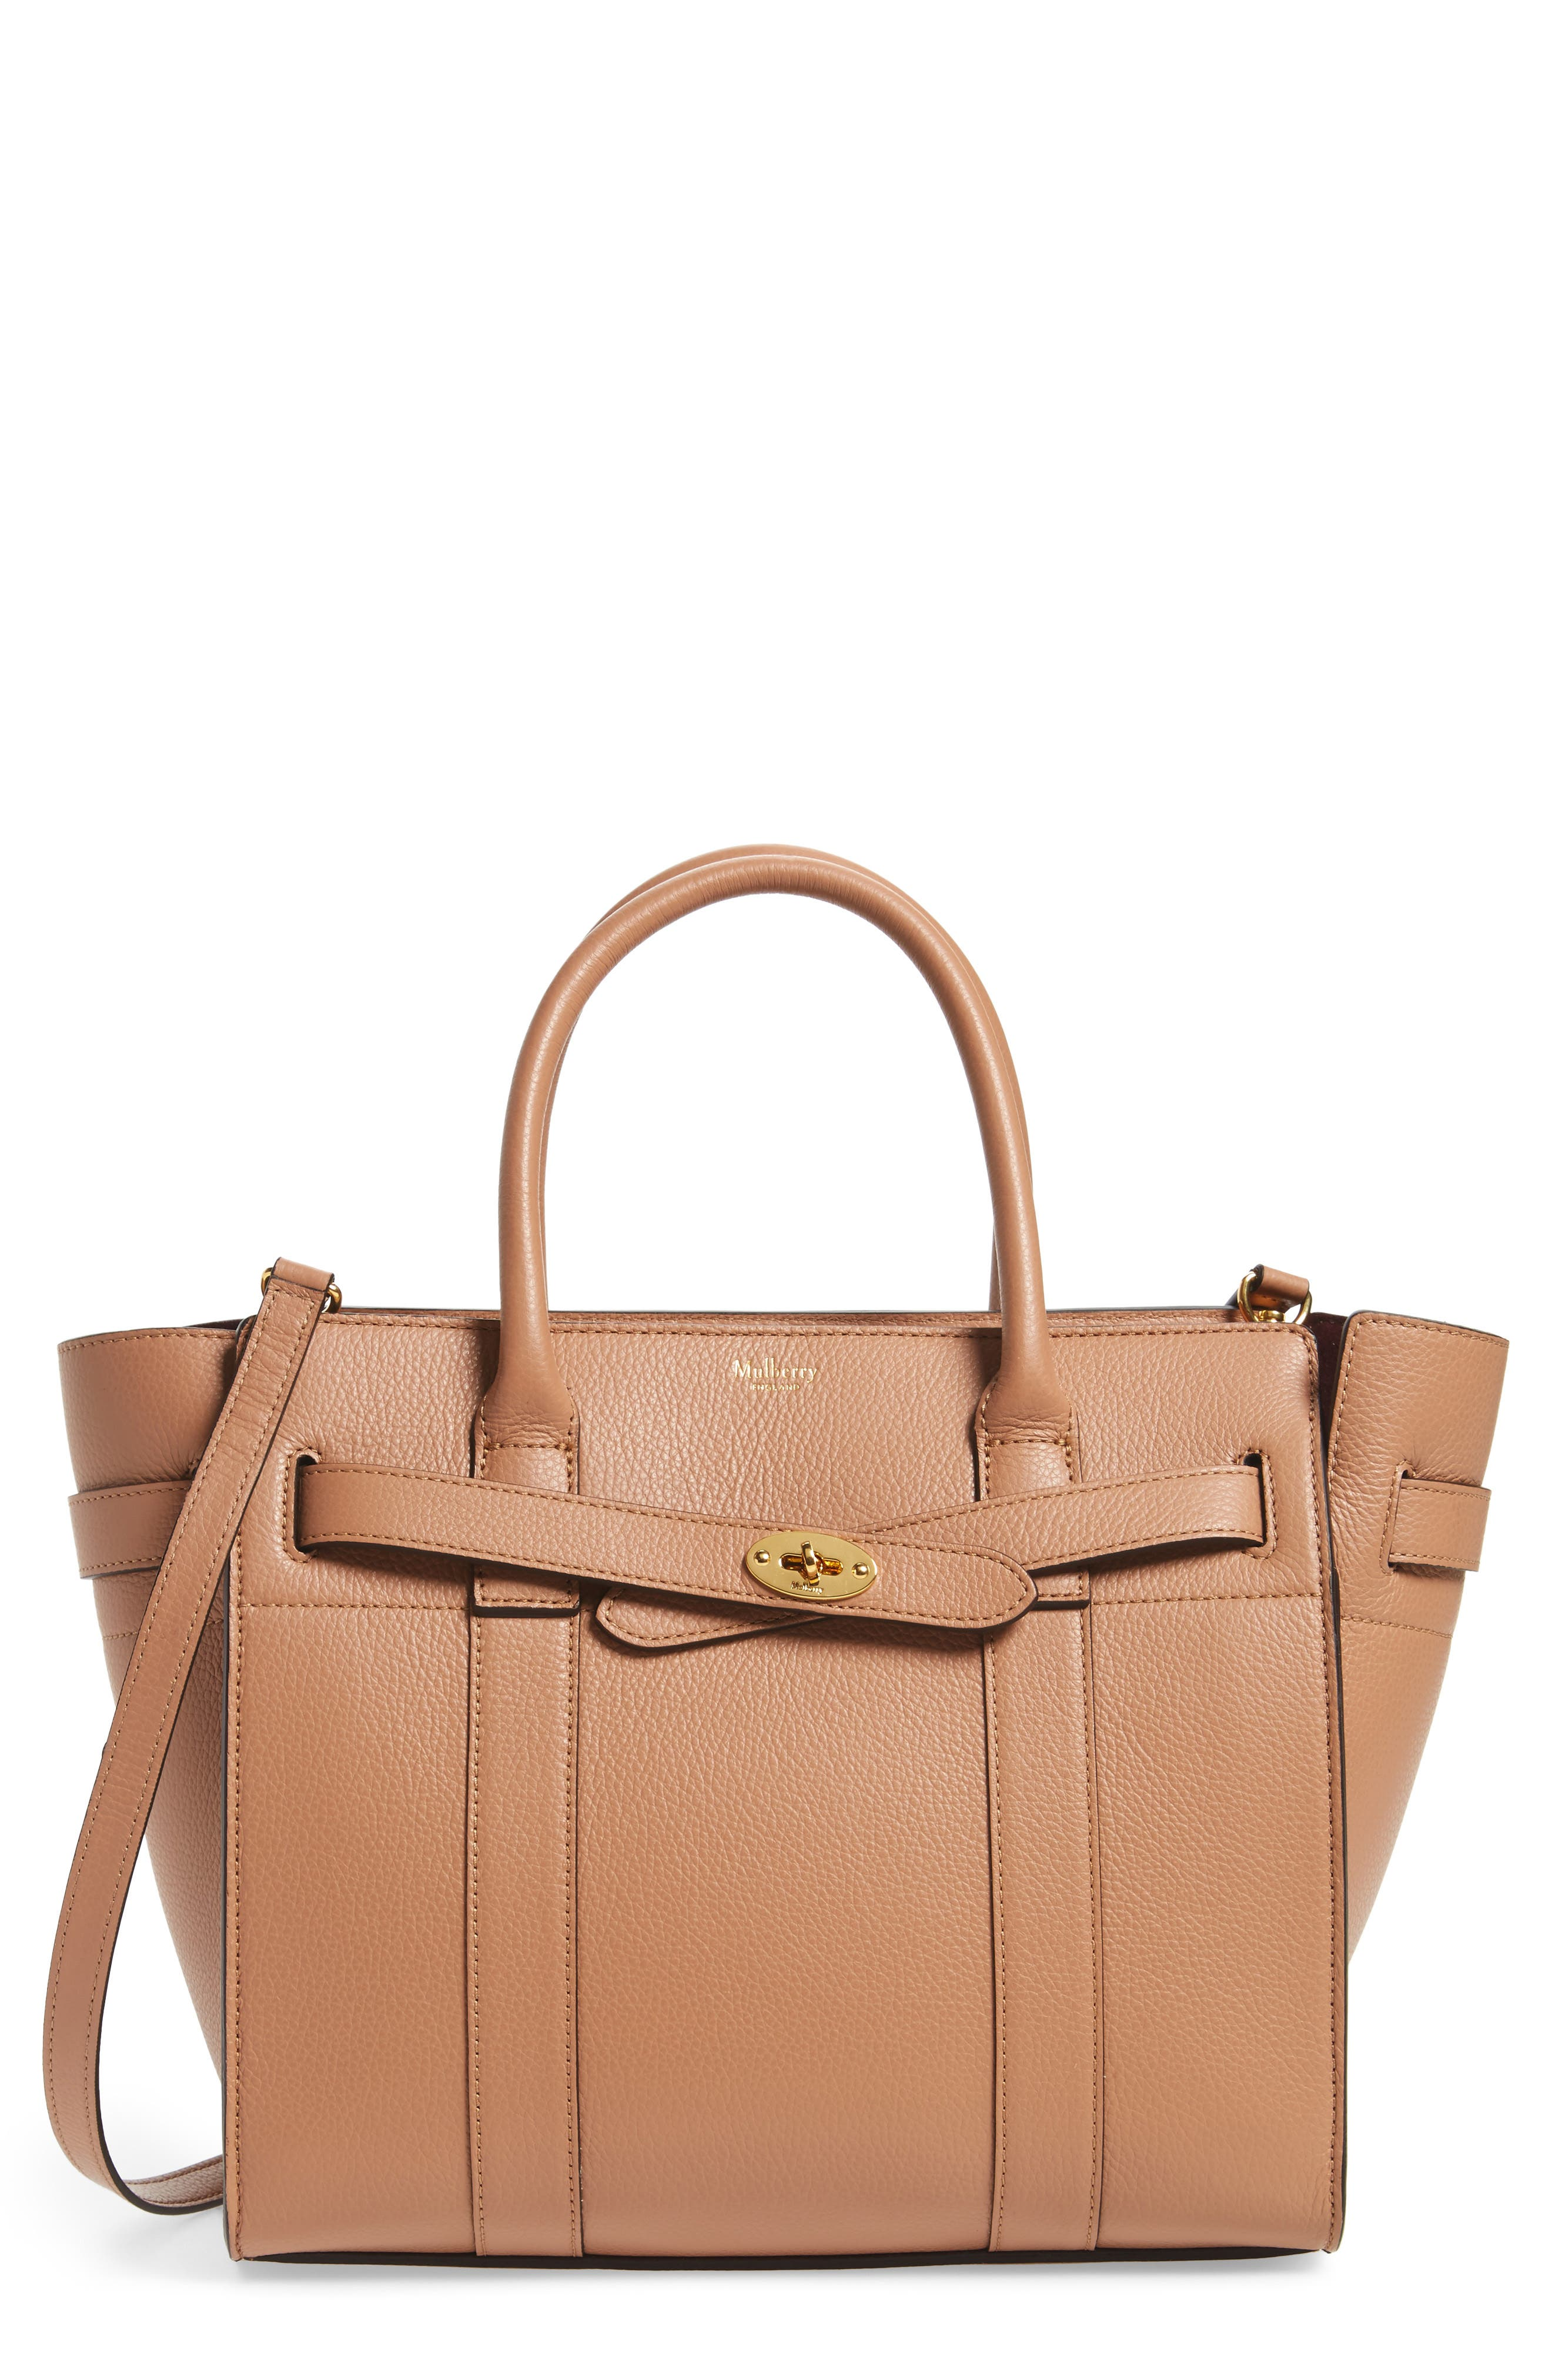 Main Image - Mulberry Small Zip Bayswater Classic Leather Tote